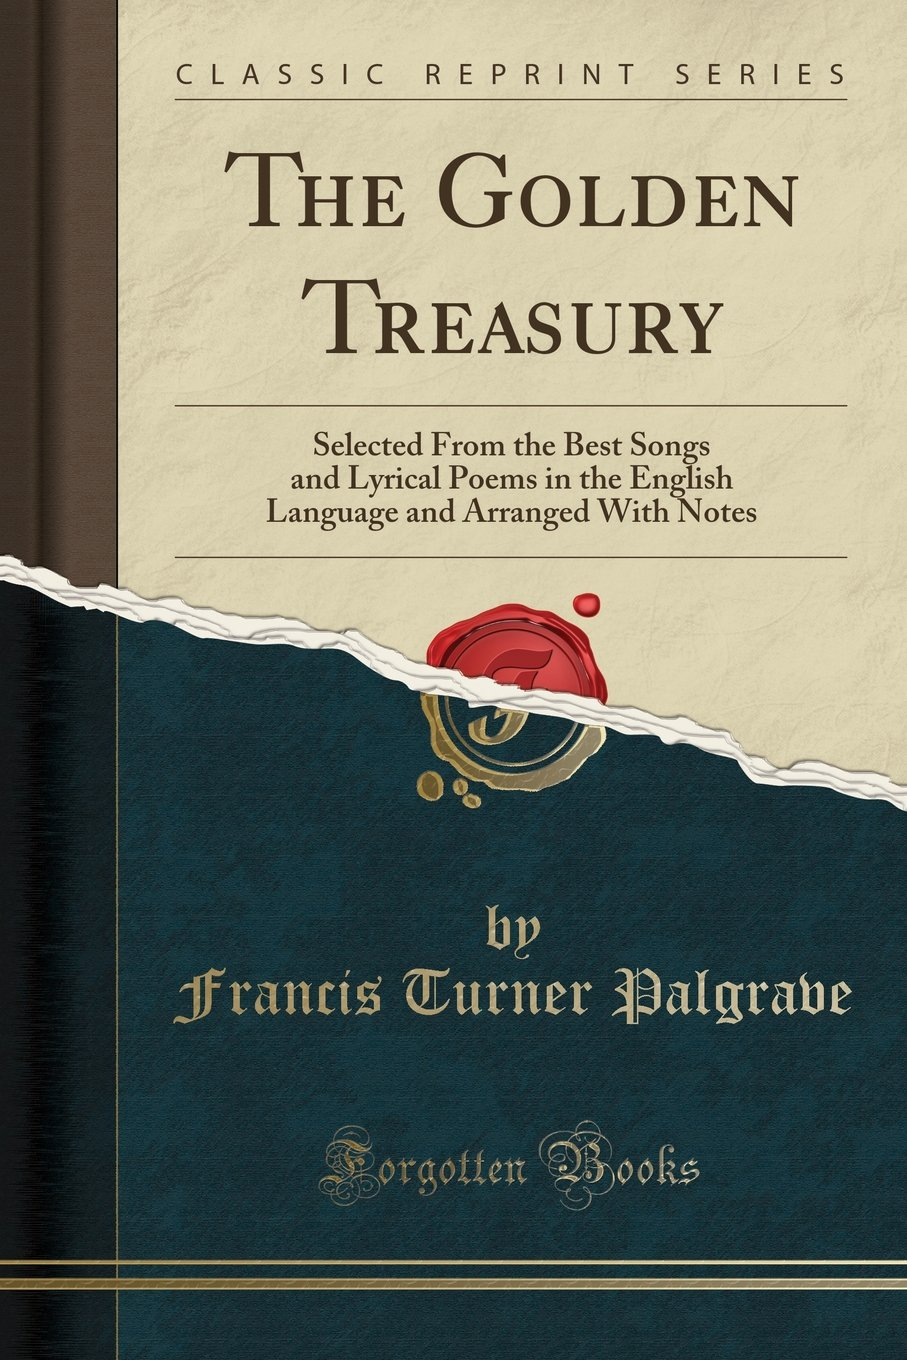 Download The Golden Treasury: Selected From the Best Songs and Lyrical Poems in the English Language and Arranged With Notes (Classic Reprint) PDF